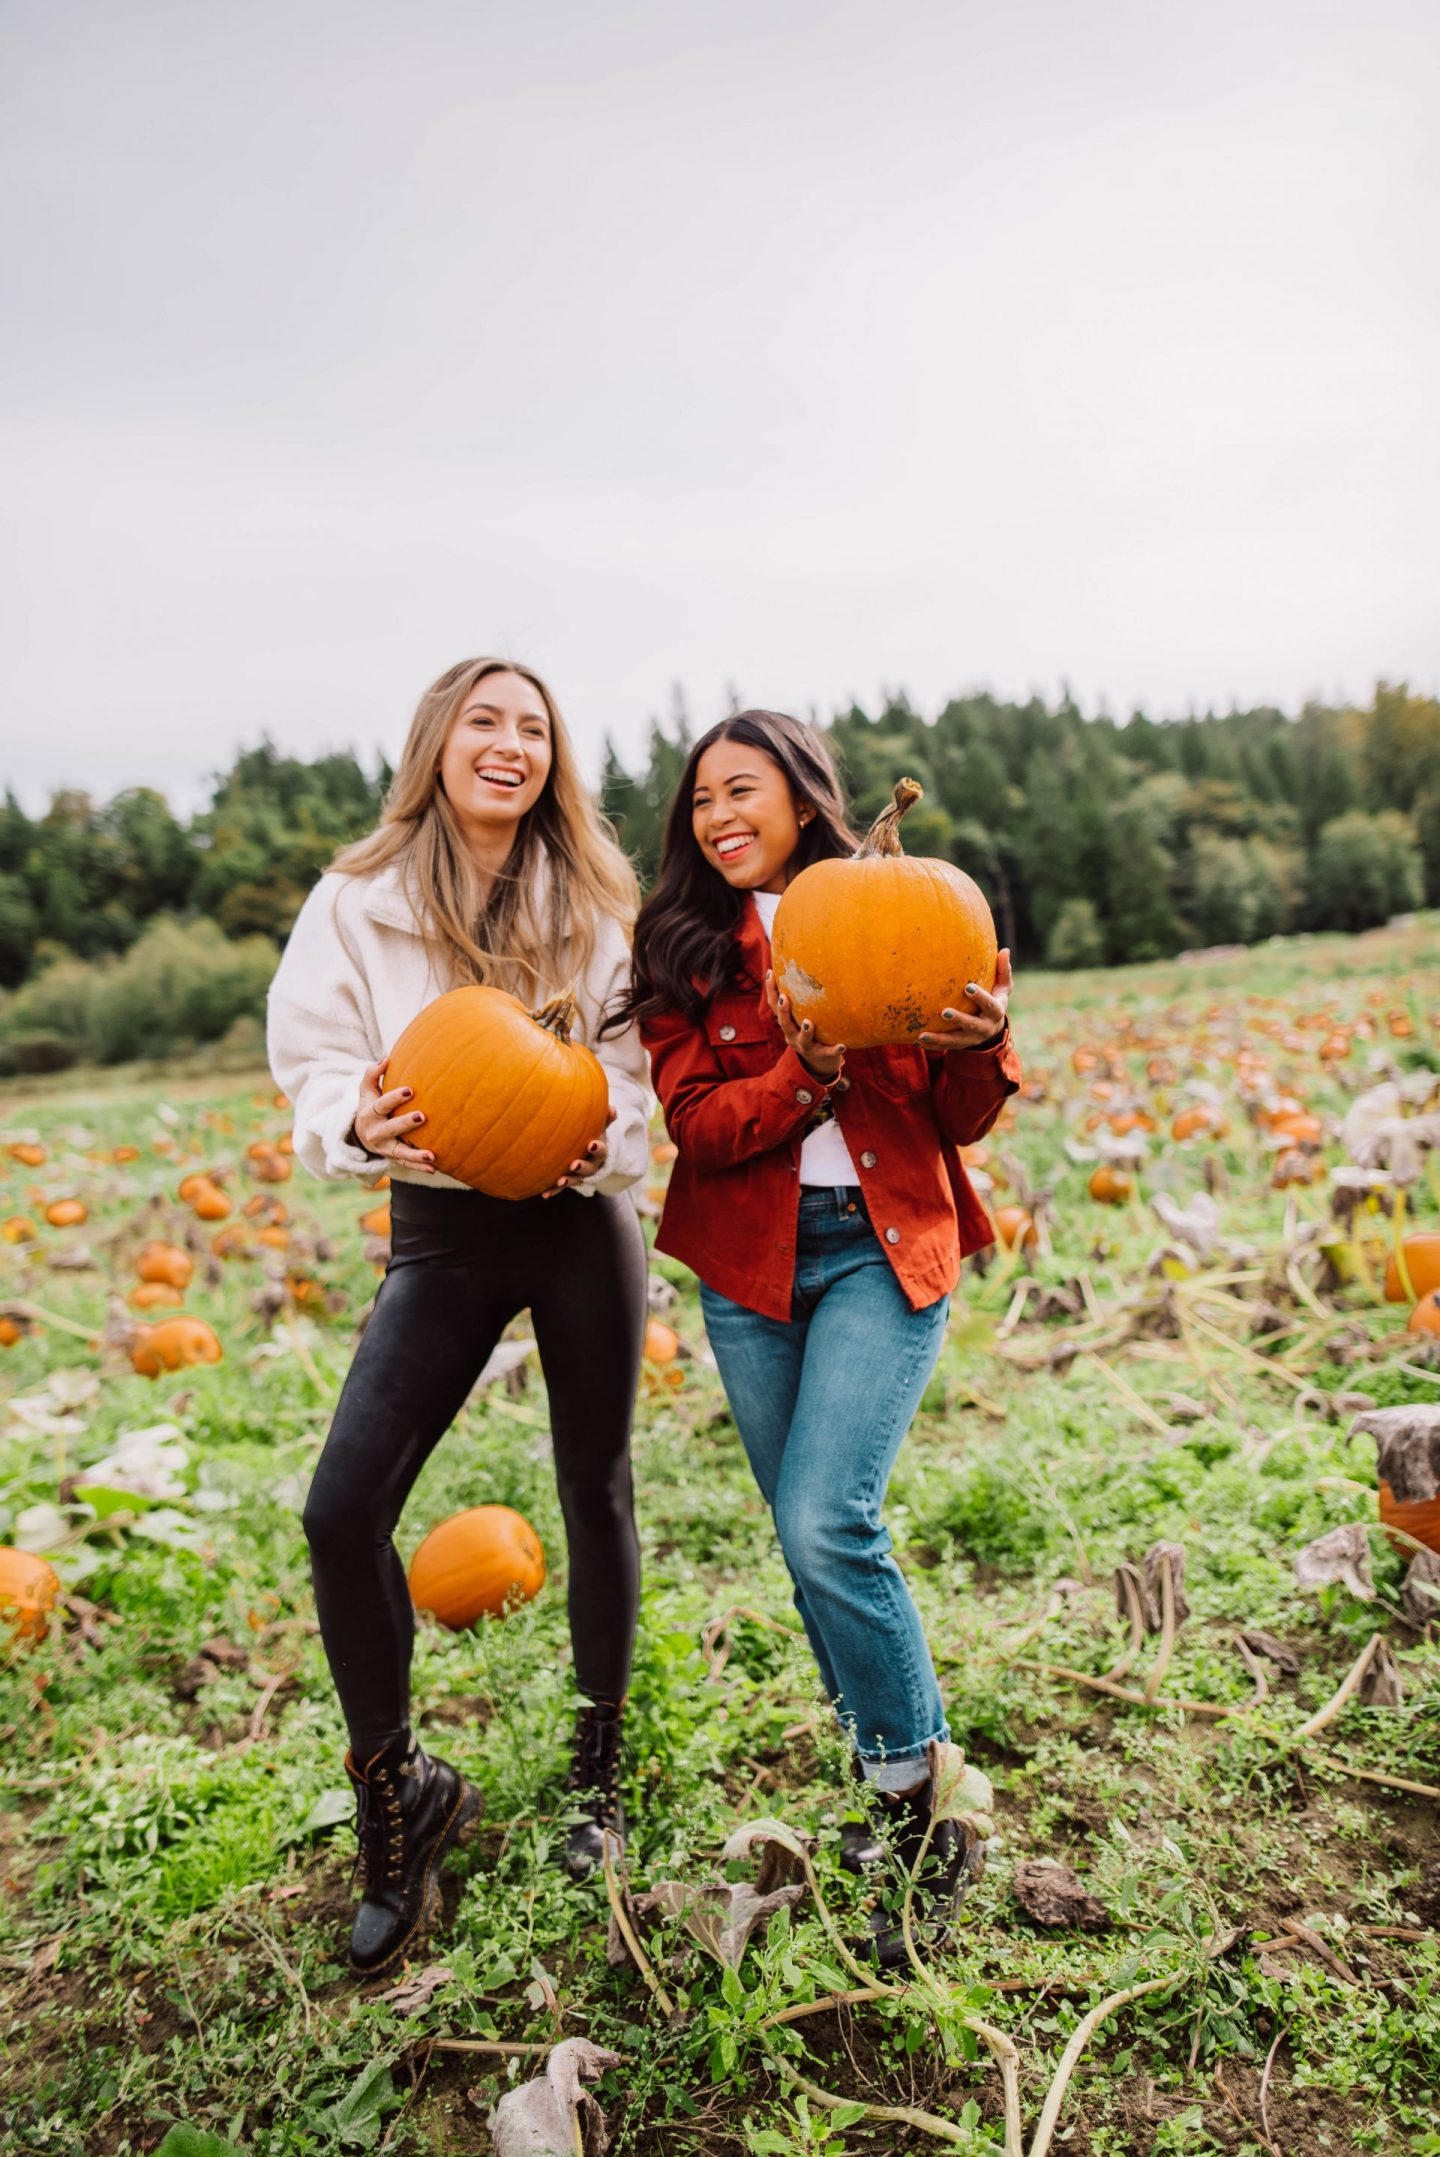 pumpkin patch photo ideas with friends - friend poses for the pumpkin patch - copyright @emmasedition - image from www.emmasedition.com